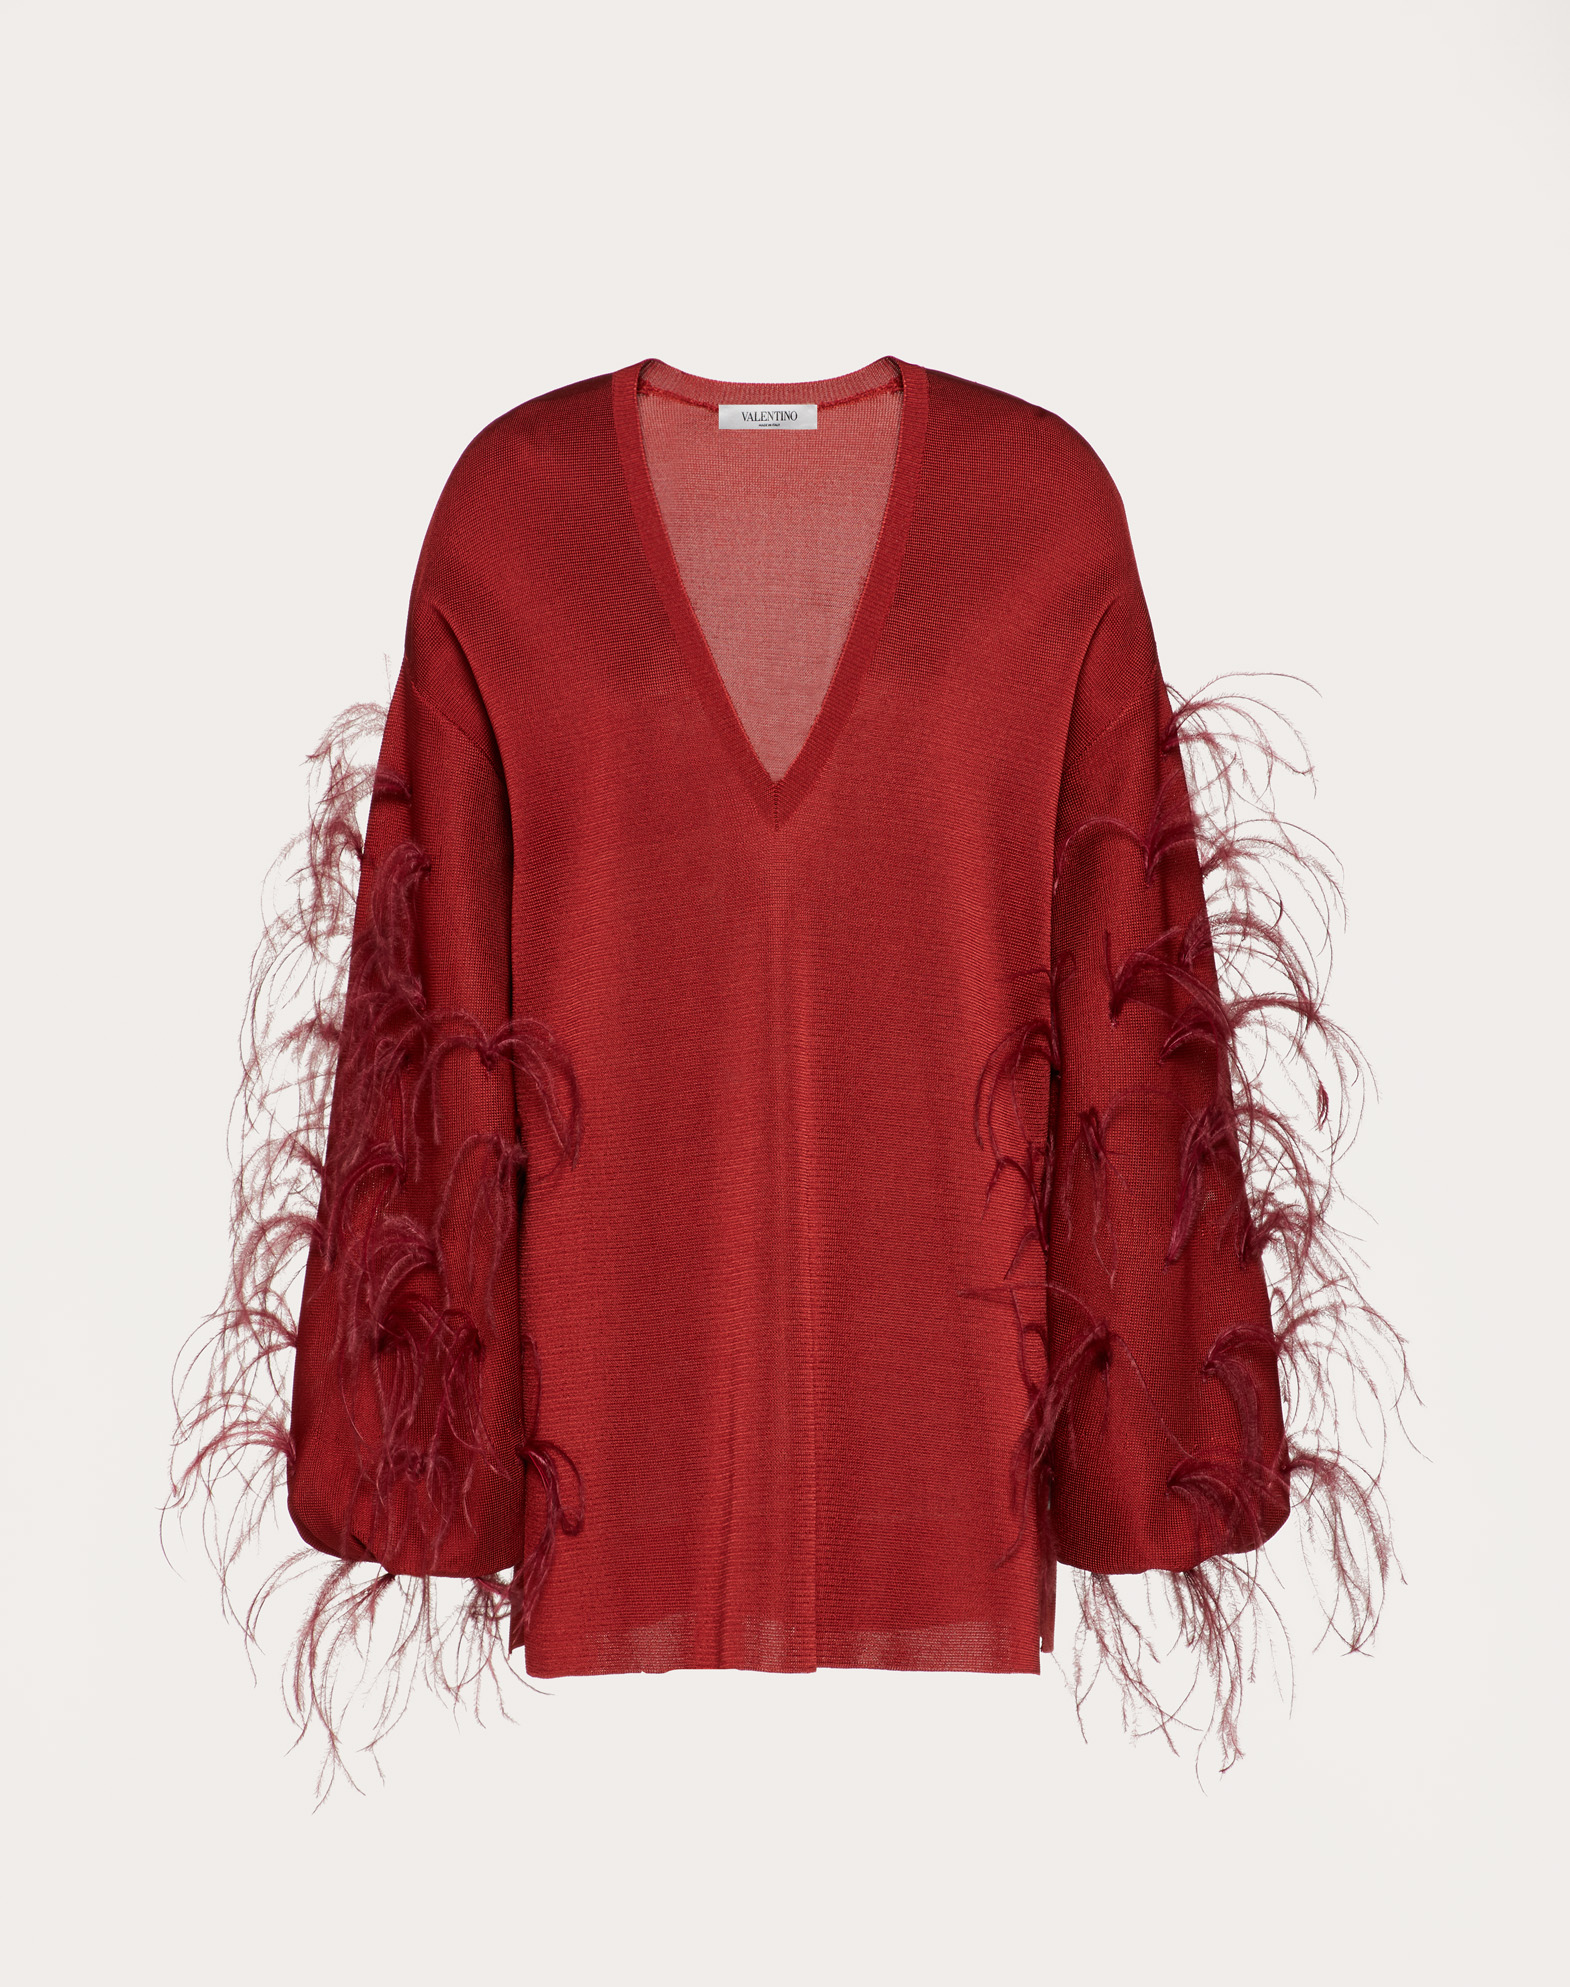 Viscose Sweater with Feathers